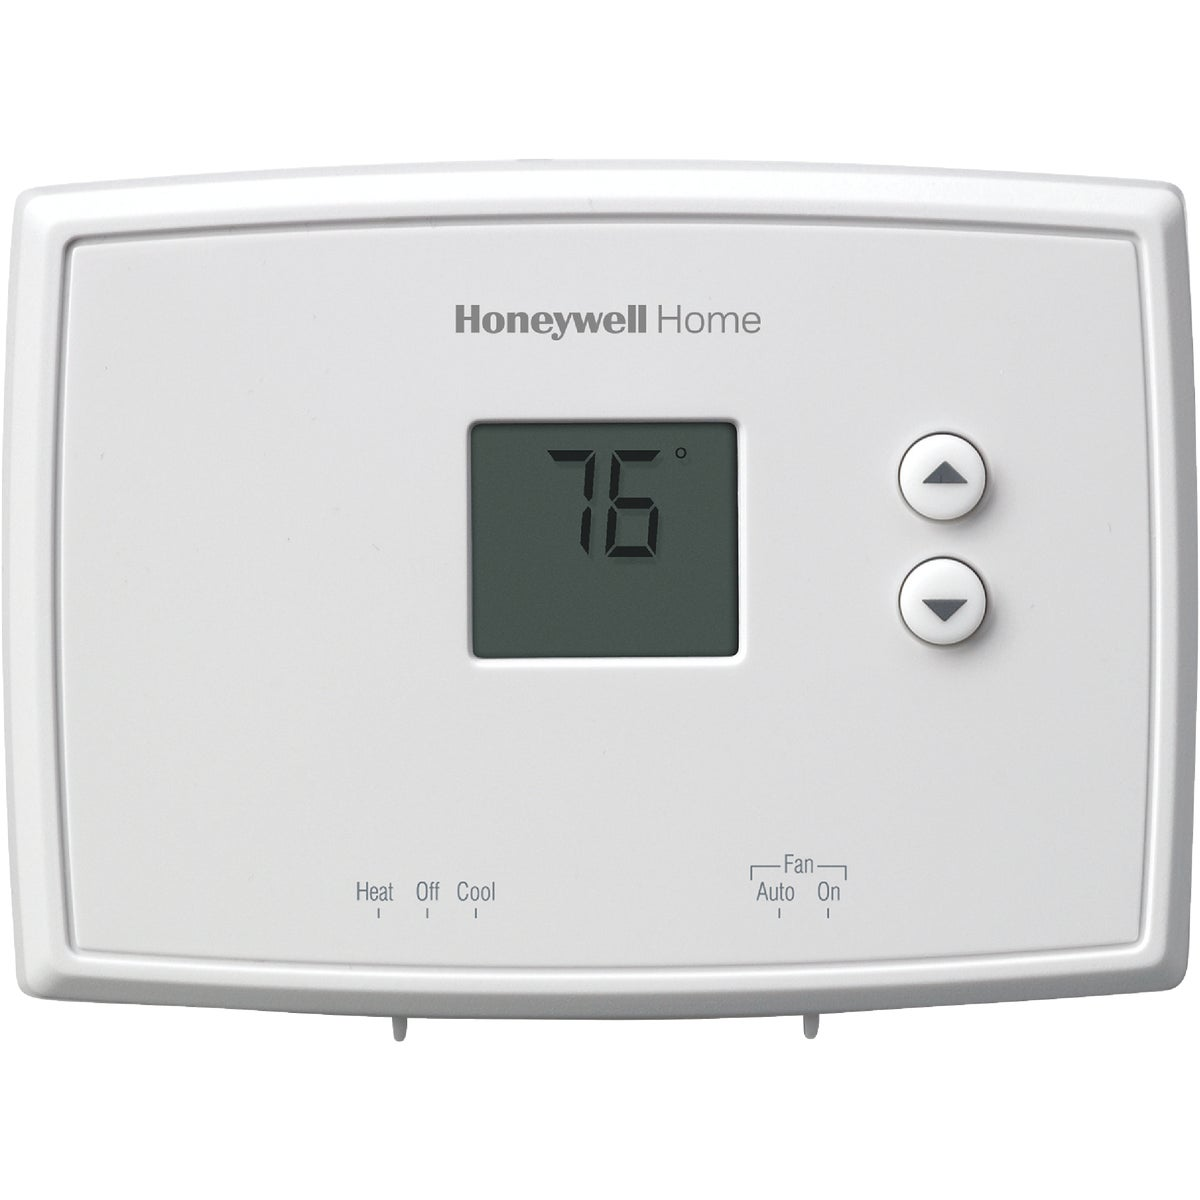 BASIC DIGITAL THERMOSTAT